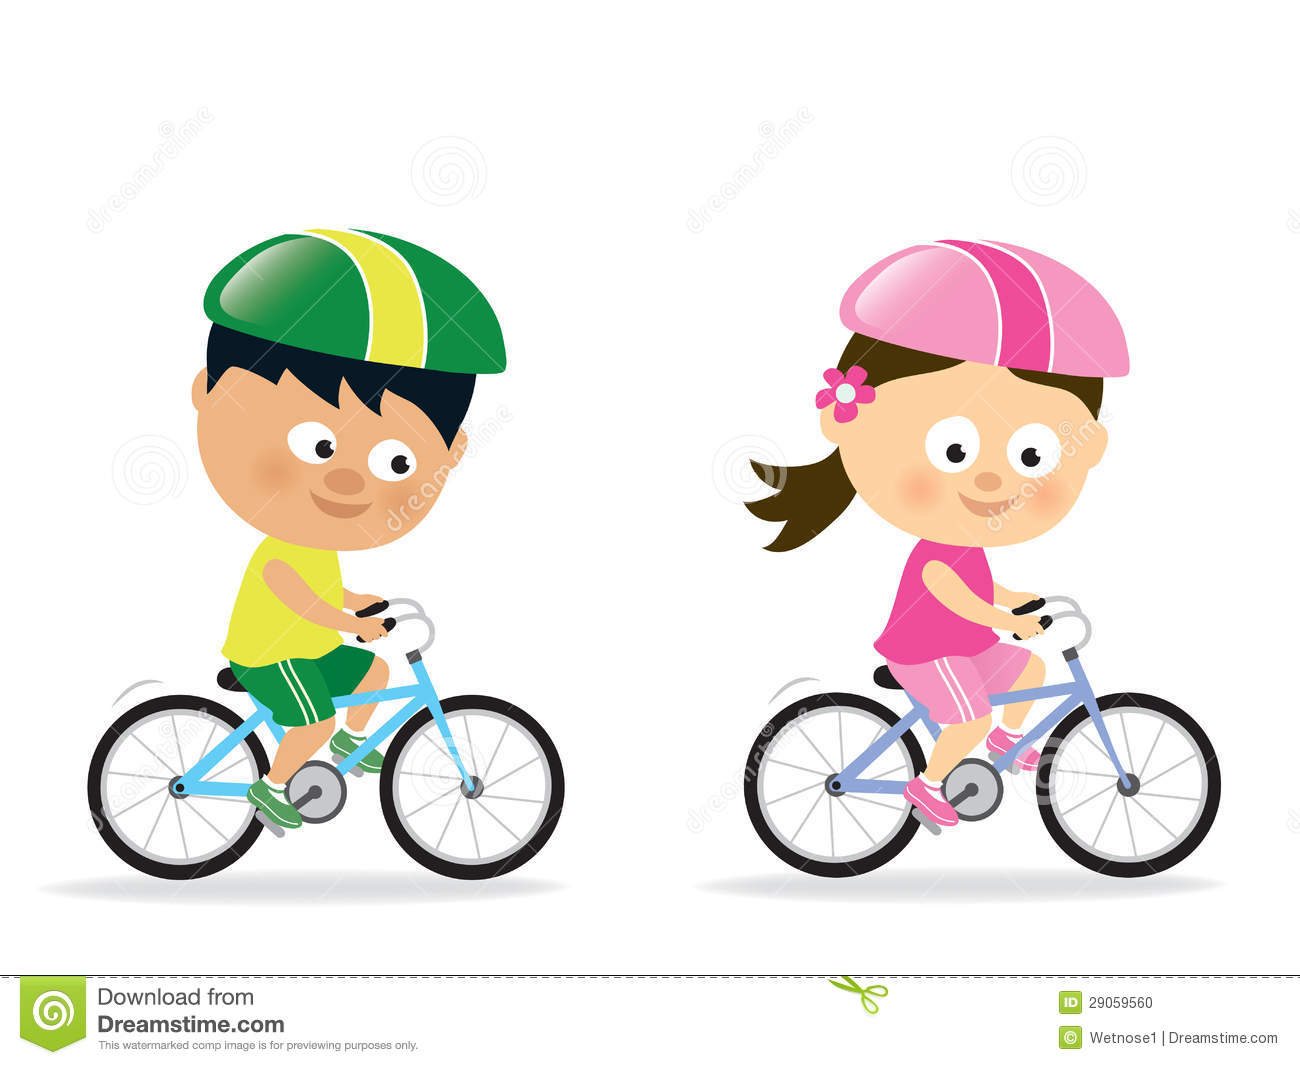 Bicycle Cute Clipart - Clipart Kid